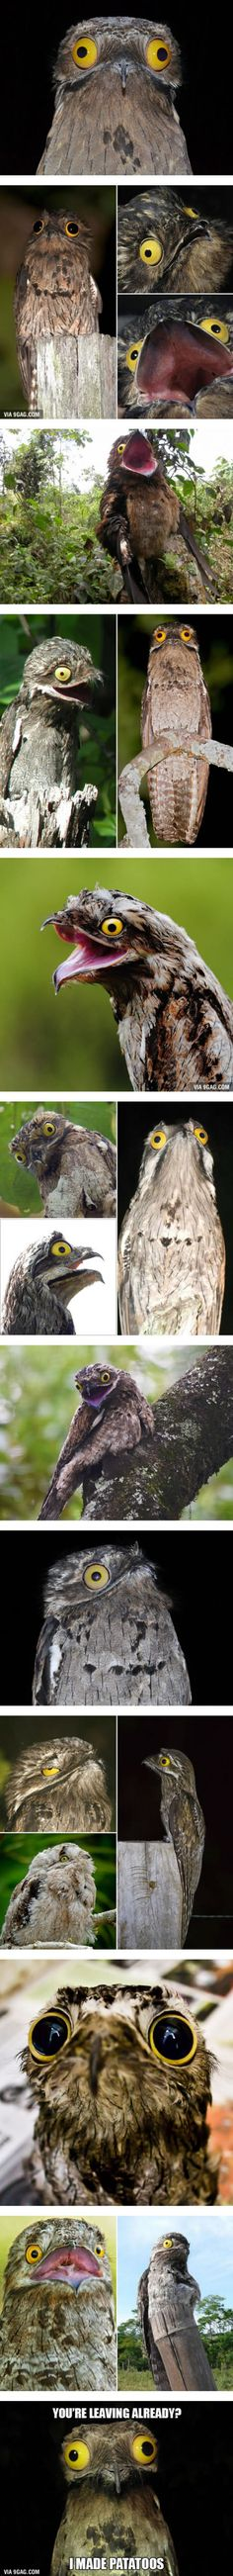 Potoo: The Funniest Looking Bird Ever